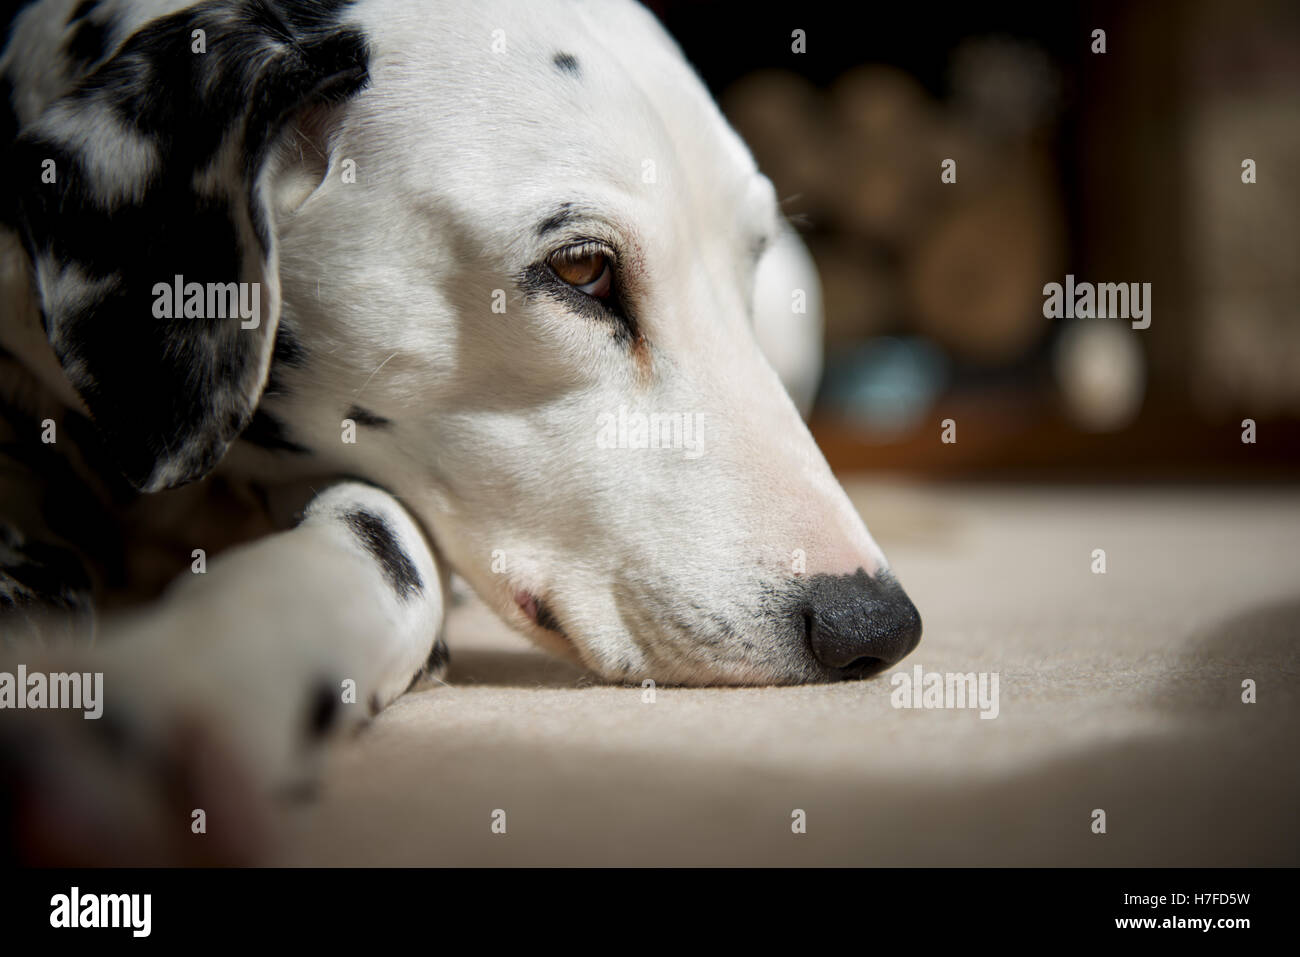 A  Dalmatian dog taking it easy on the living room carpet - Stock Image